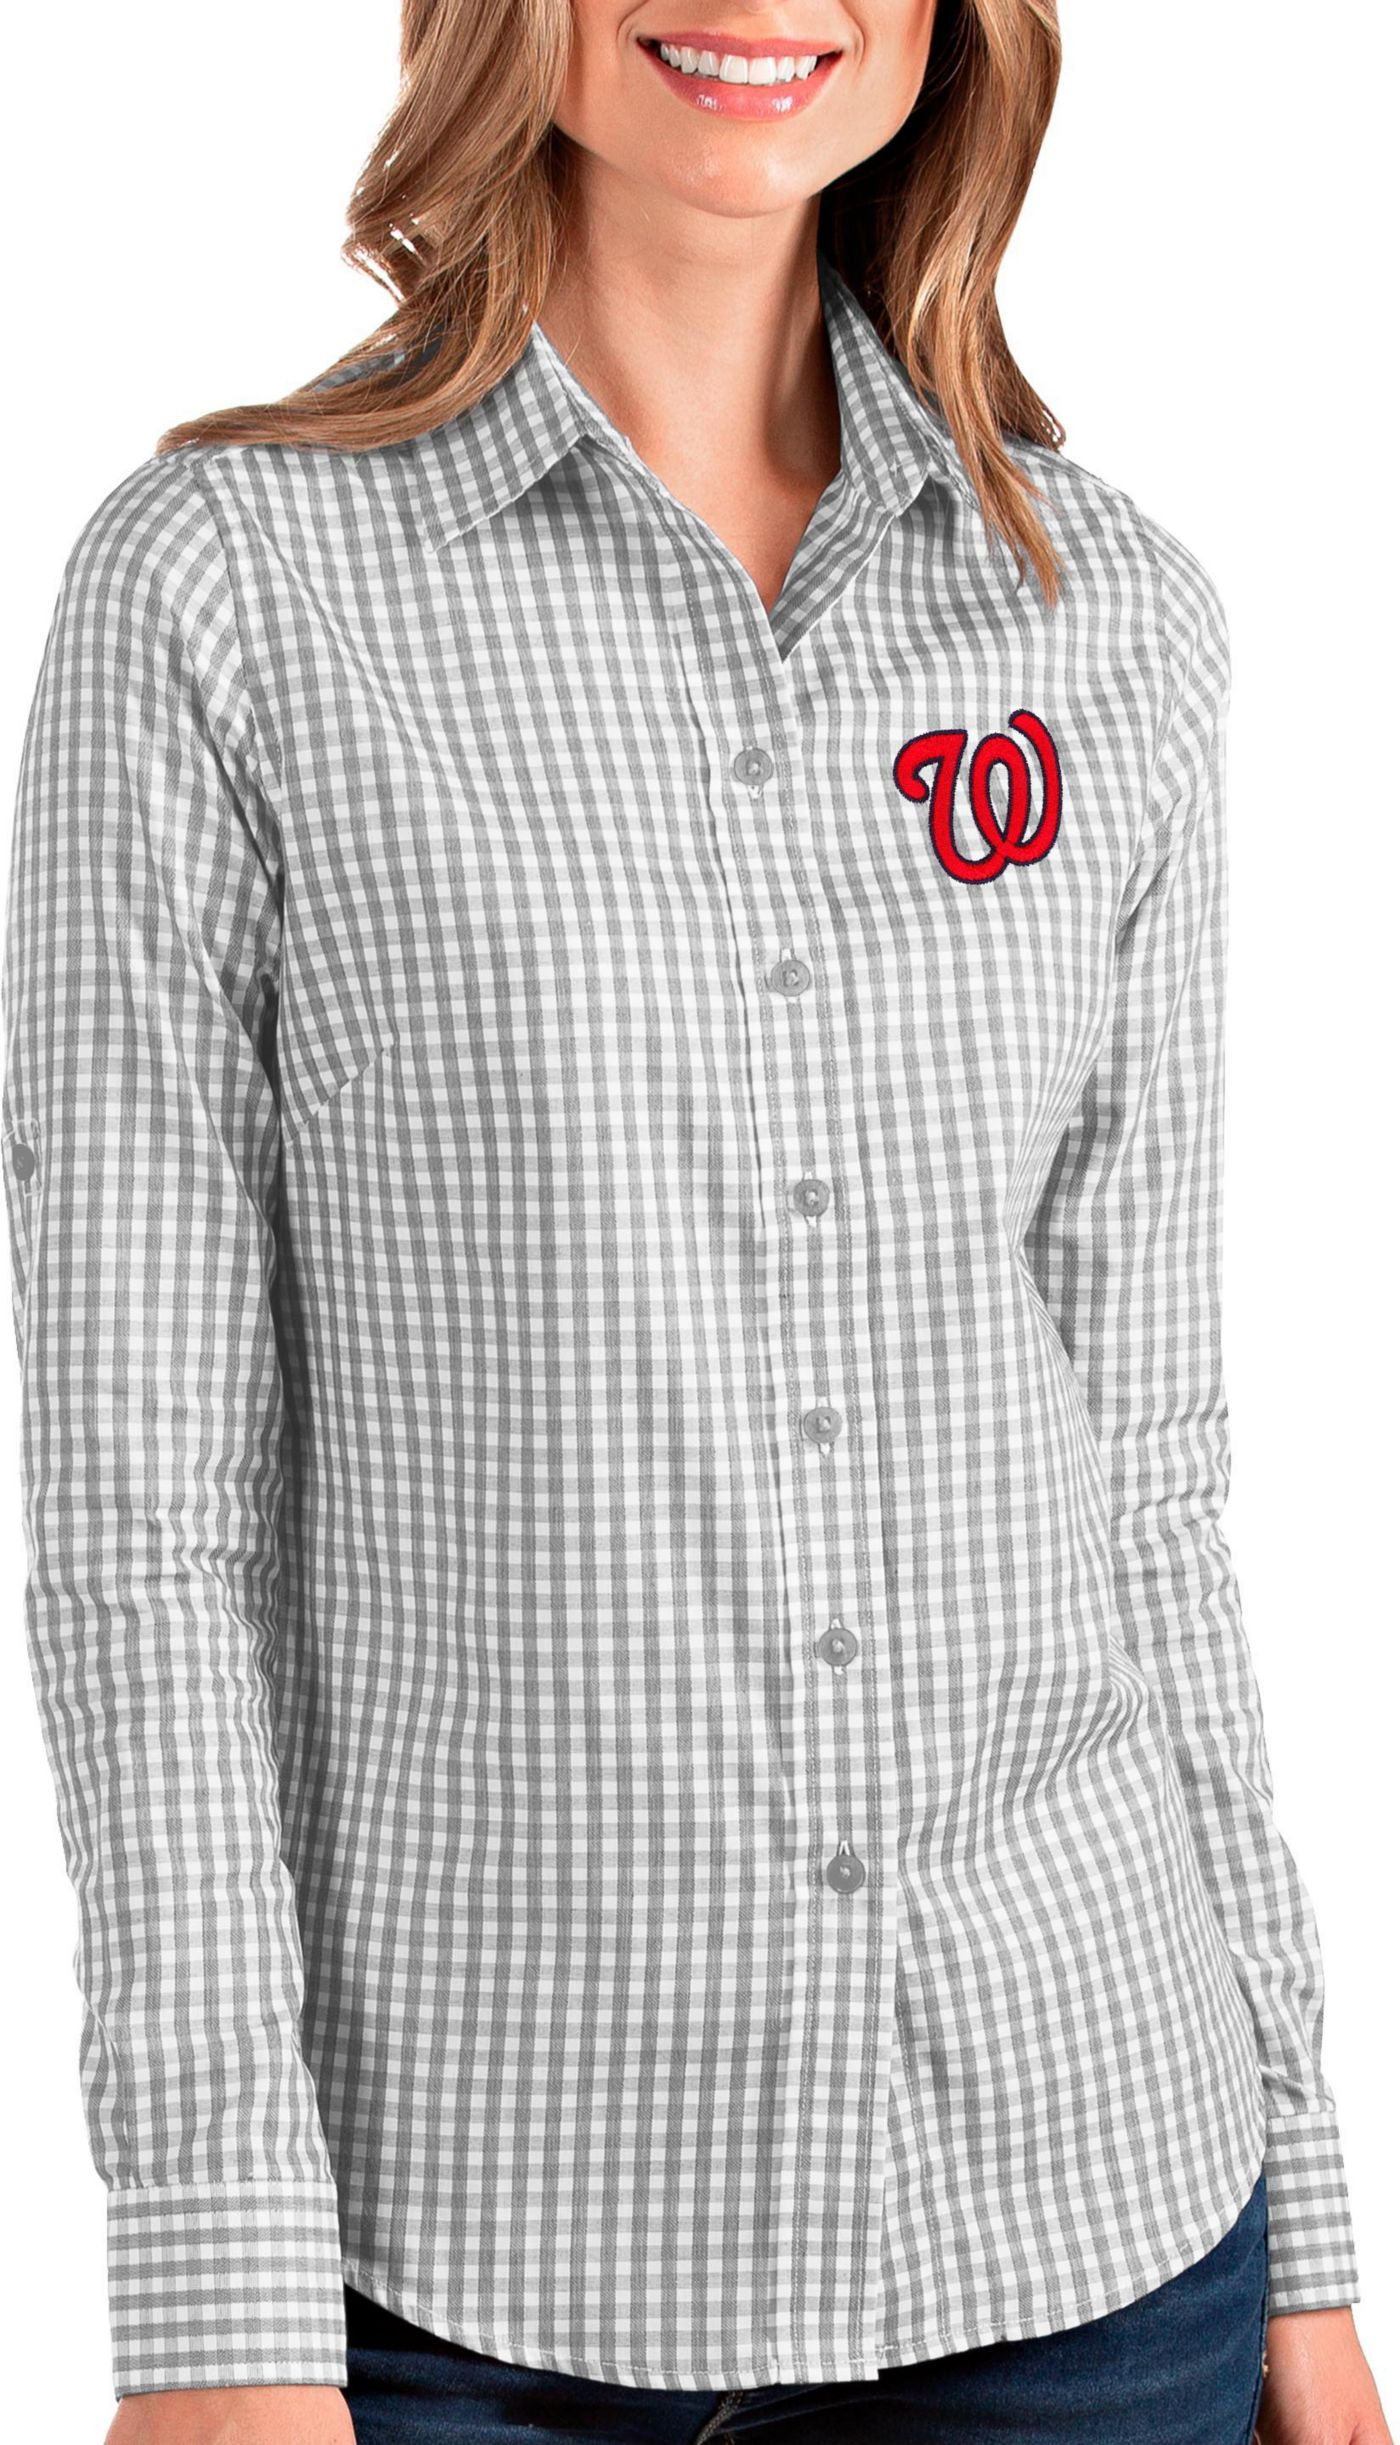 Antigua Women's Washington Nationals Structure Button-Up Grey Long Sleeve Shirt